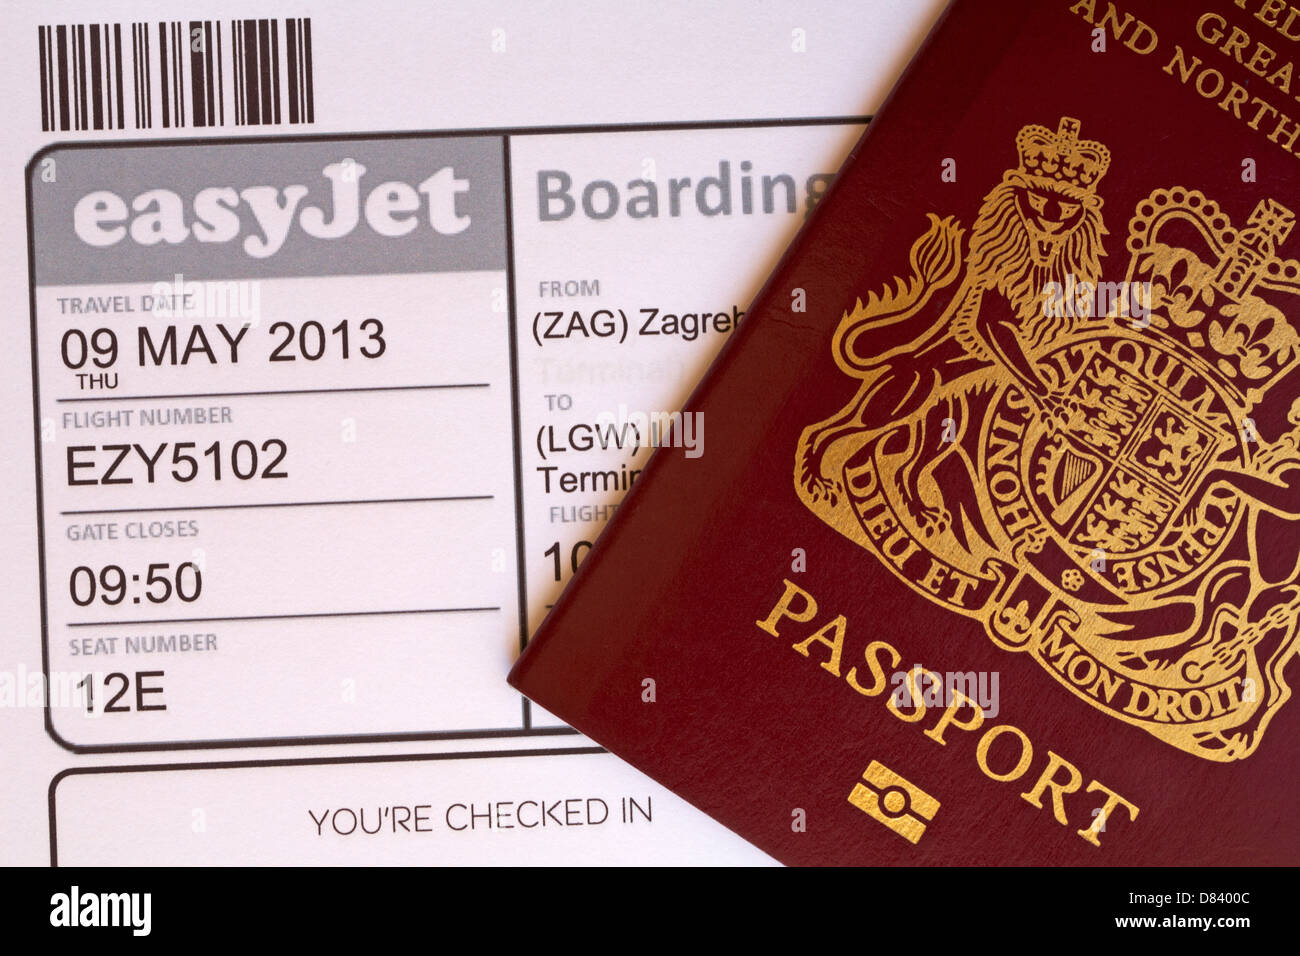 passport and Easyjet boarding pass for flight to Zagreb in Croatia - Stock Image